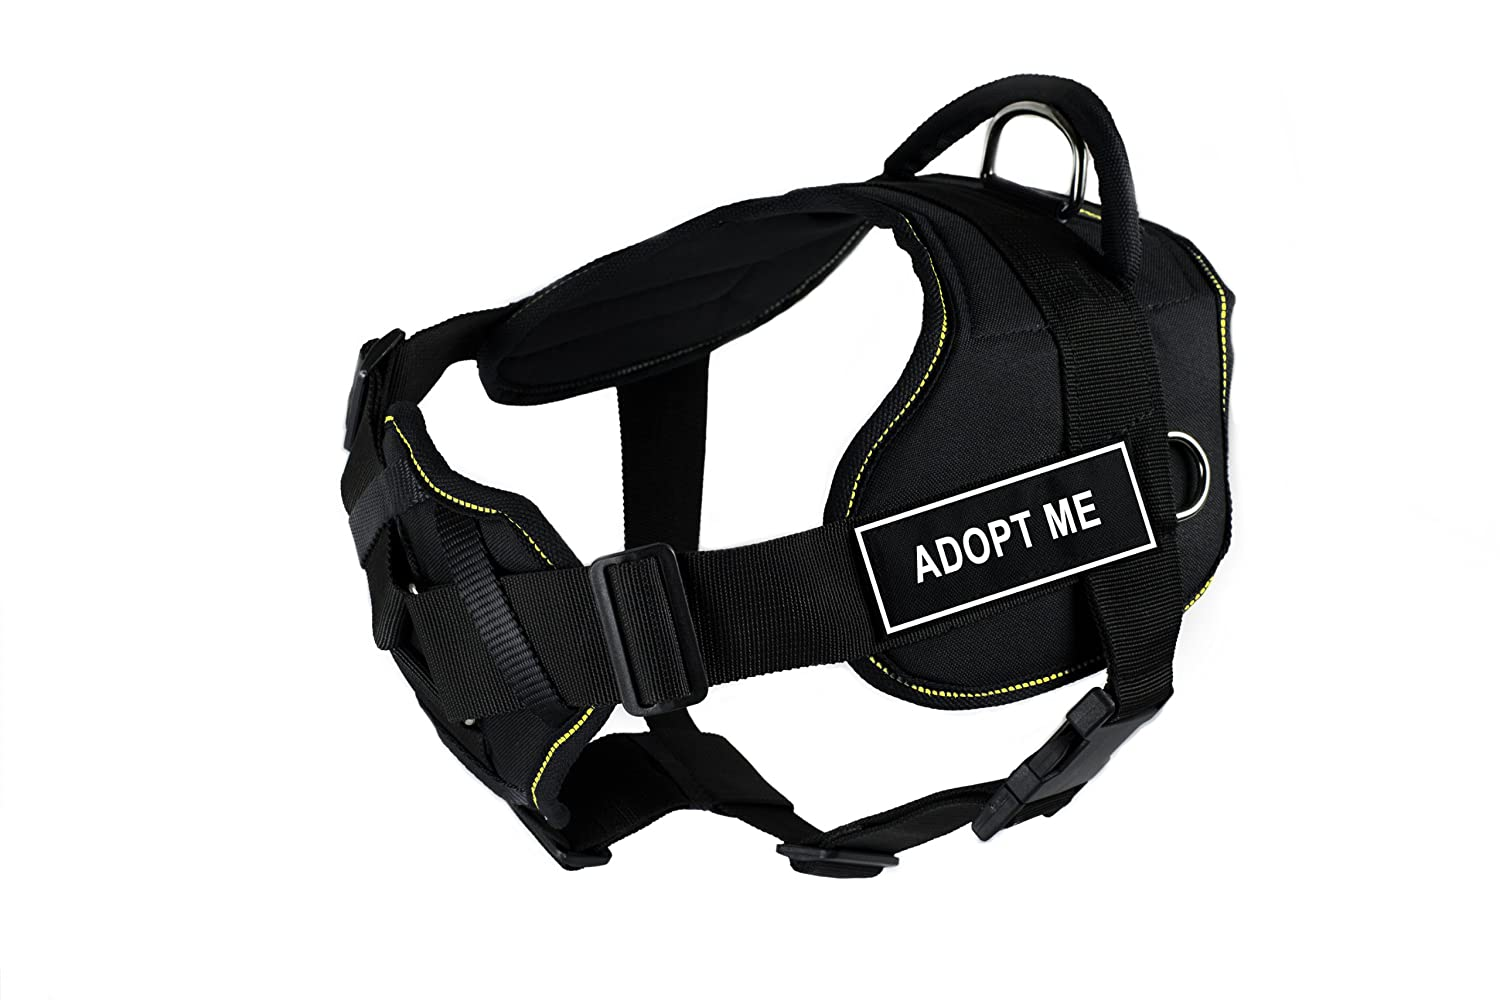 Dean & Tyler Fun Harness with Padded Chest Piece, Adopt Me, Large, Black with Yellow Trim